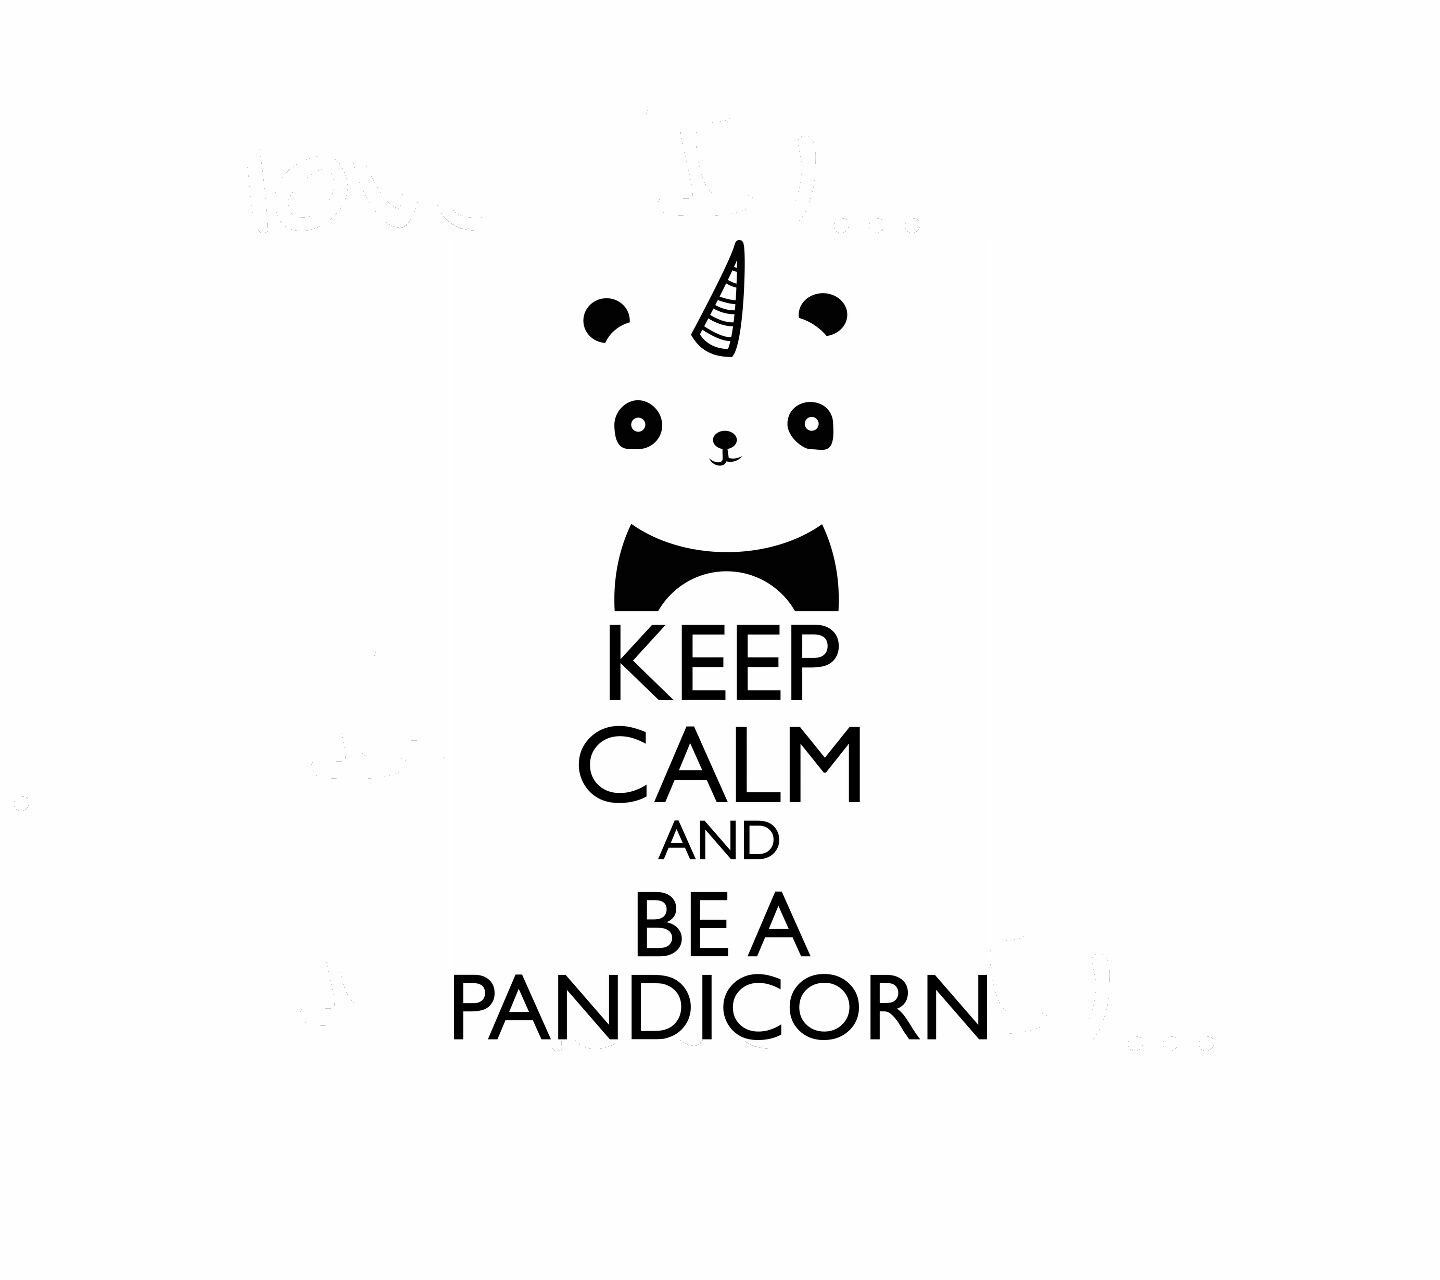 Pin By Jordan On Mermaids Unicorns And Faries And Stuff Calm Quotes Keep Calm Quotes Calm